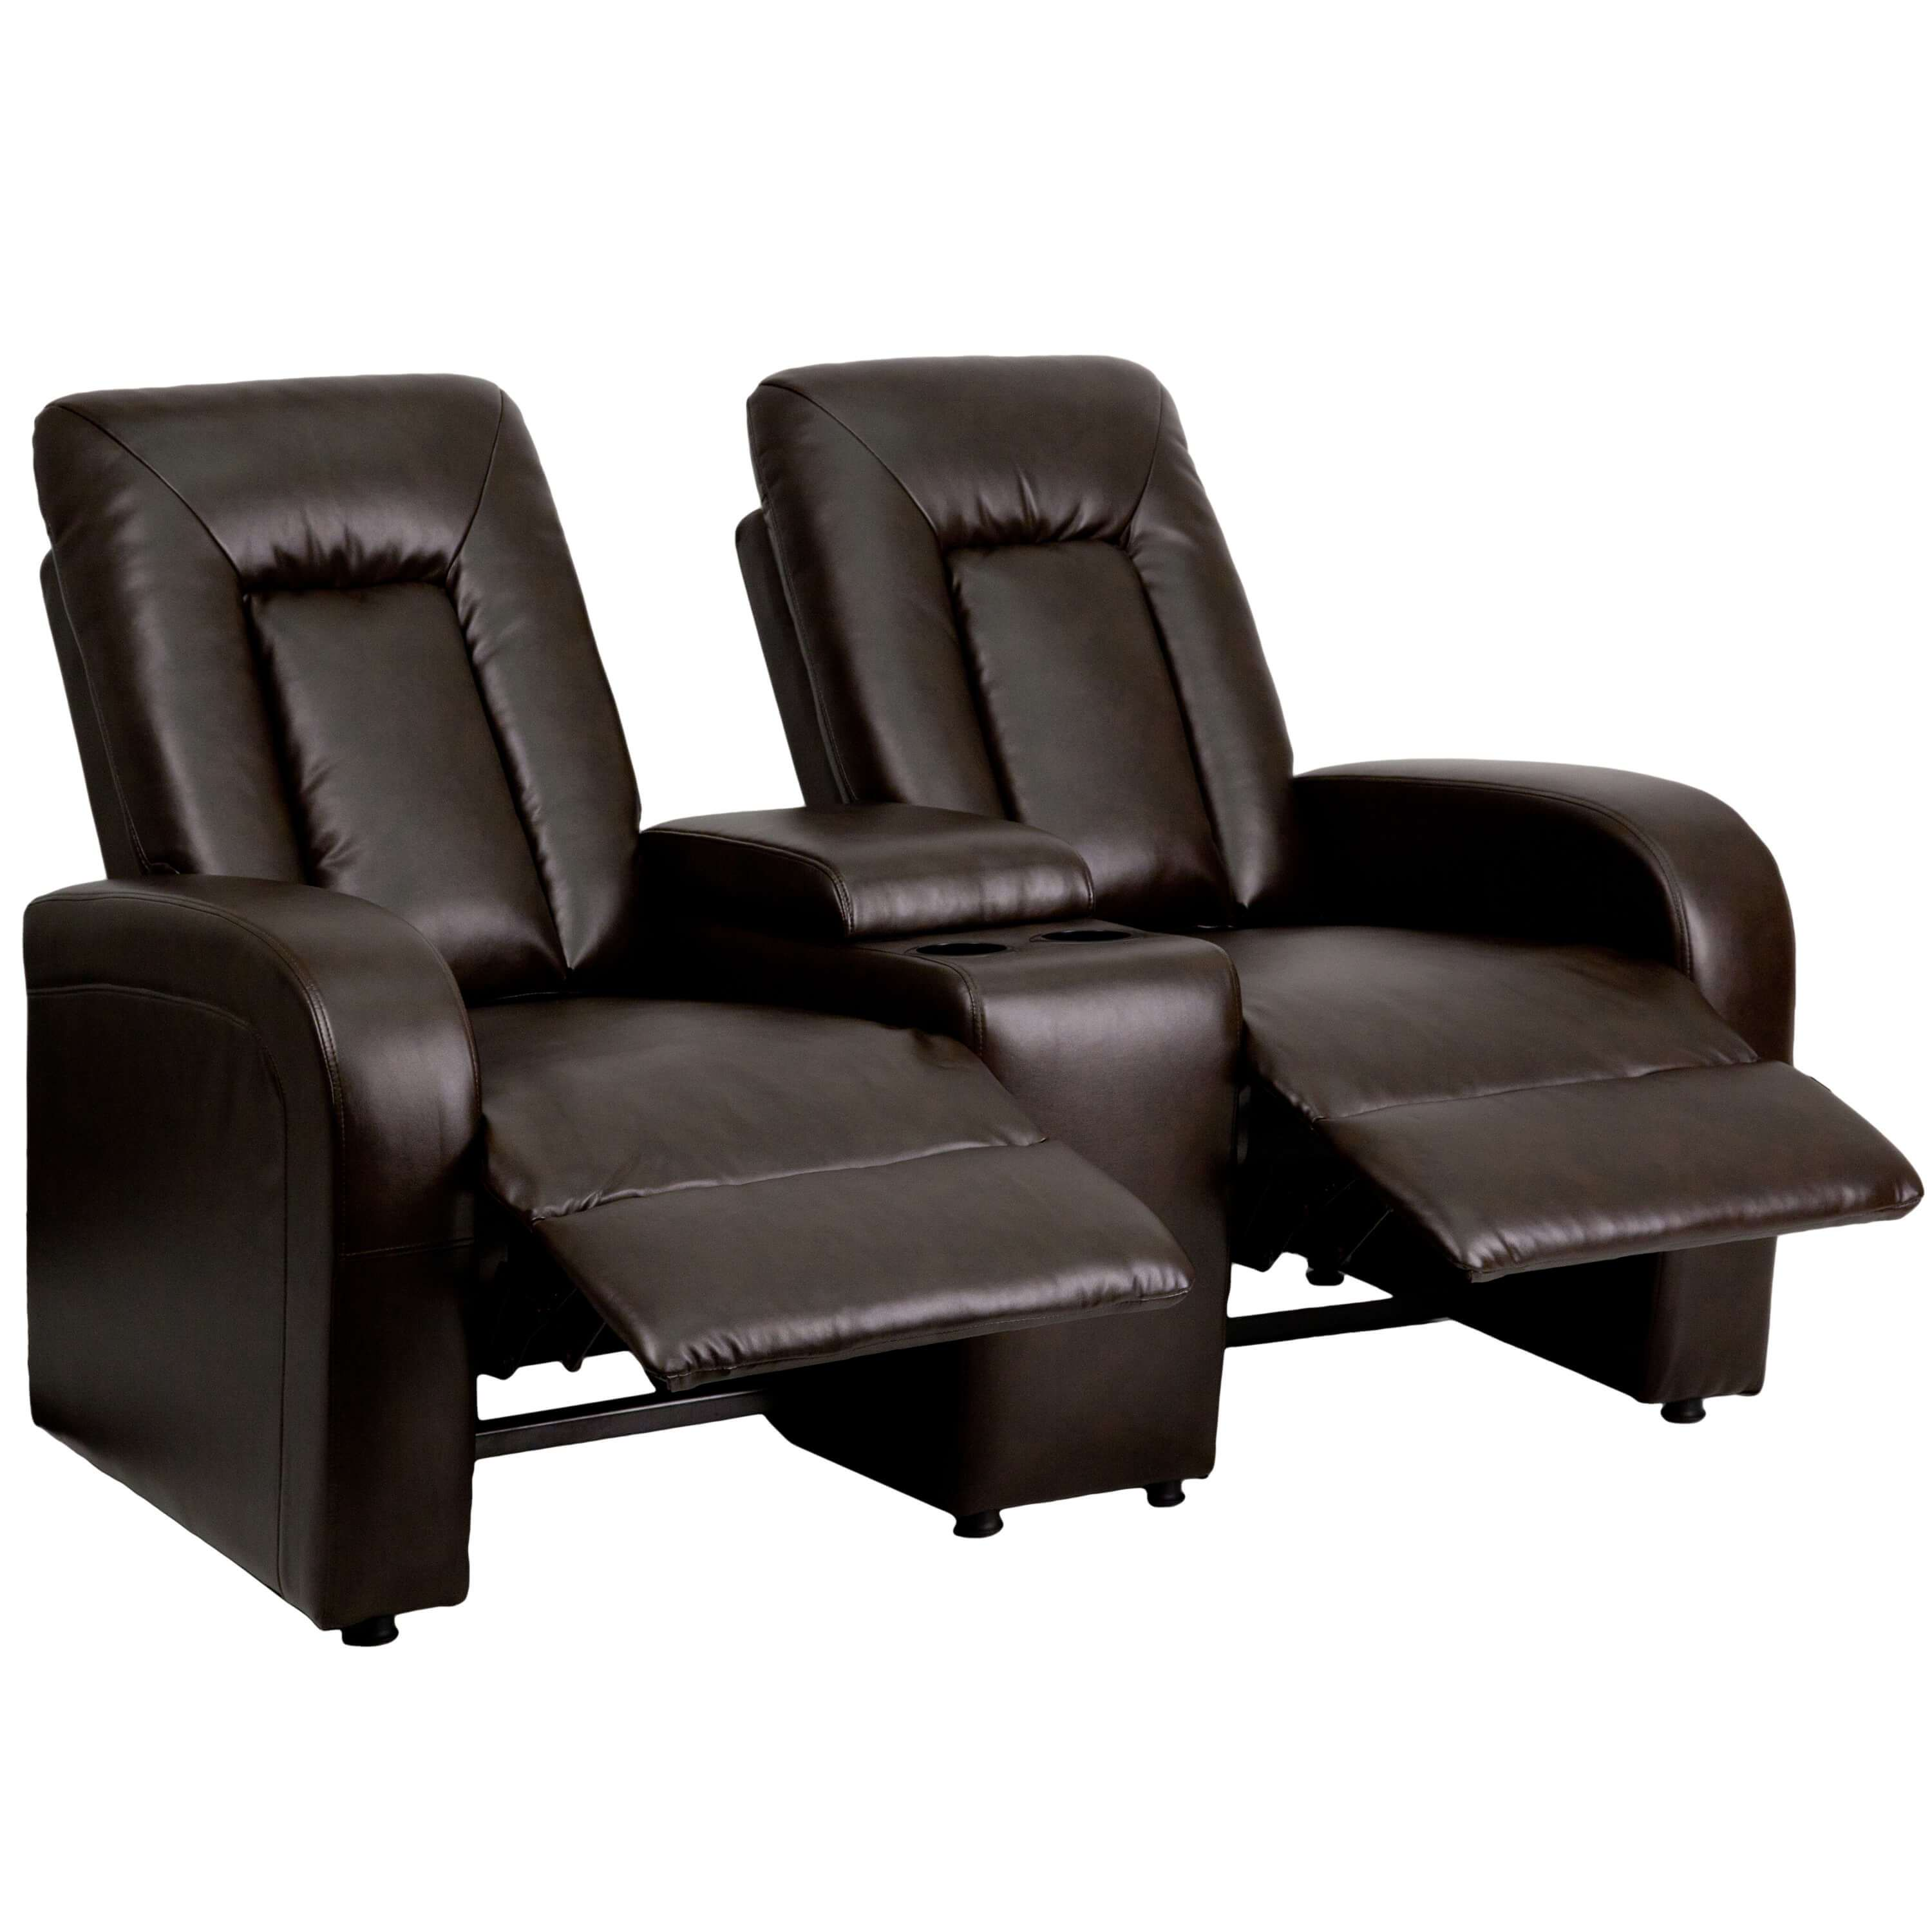 home-theatre-seating-movie-theater-couches.jpg